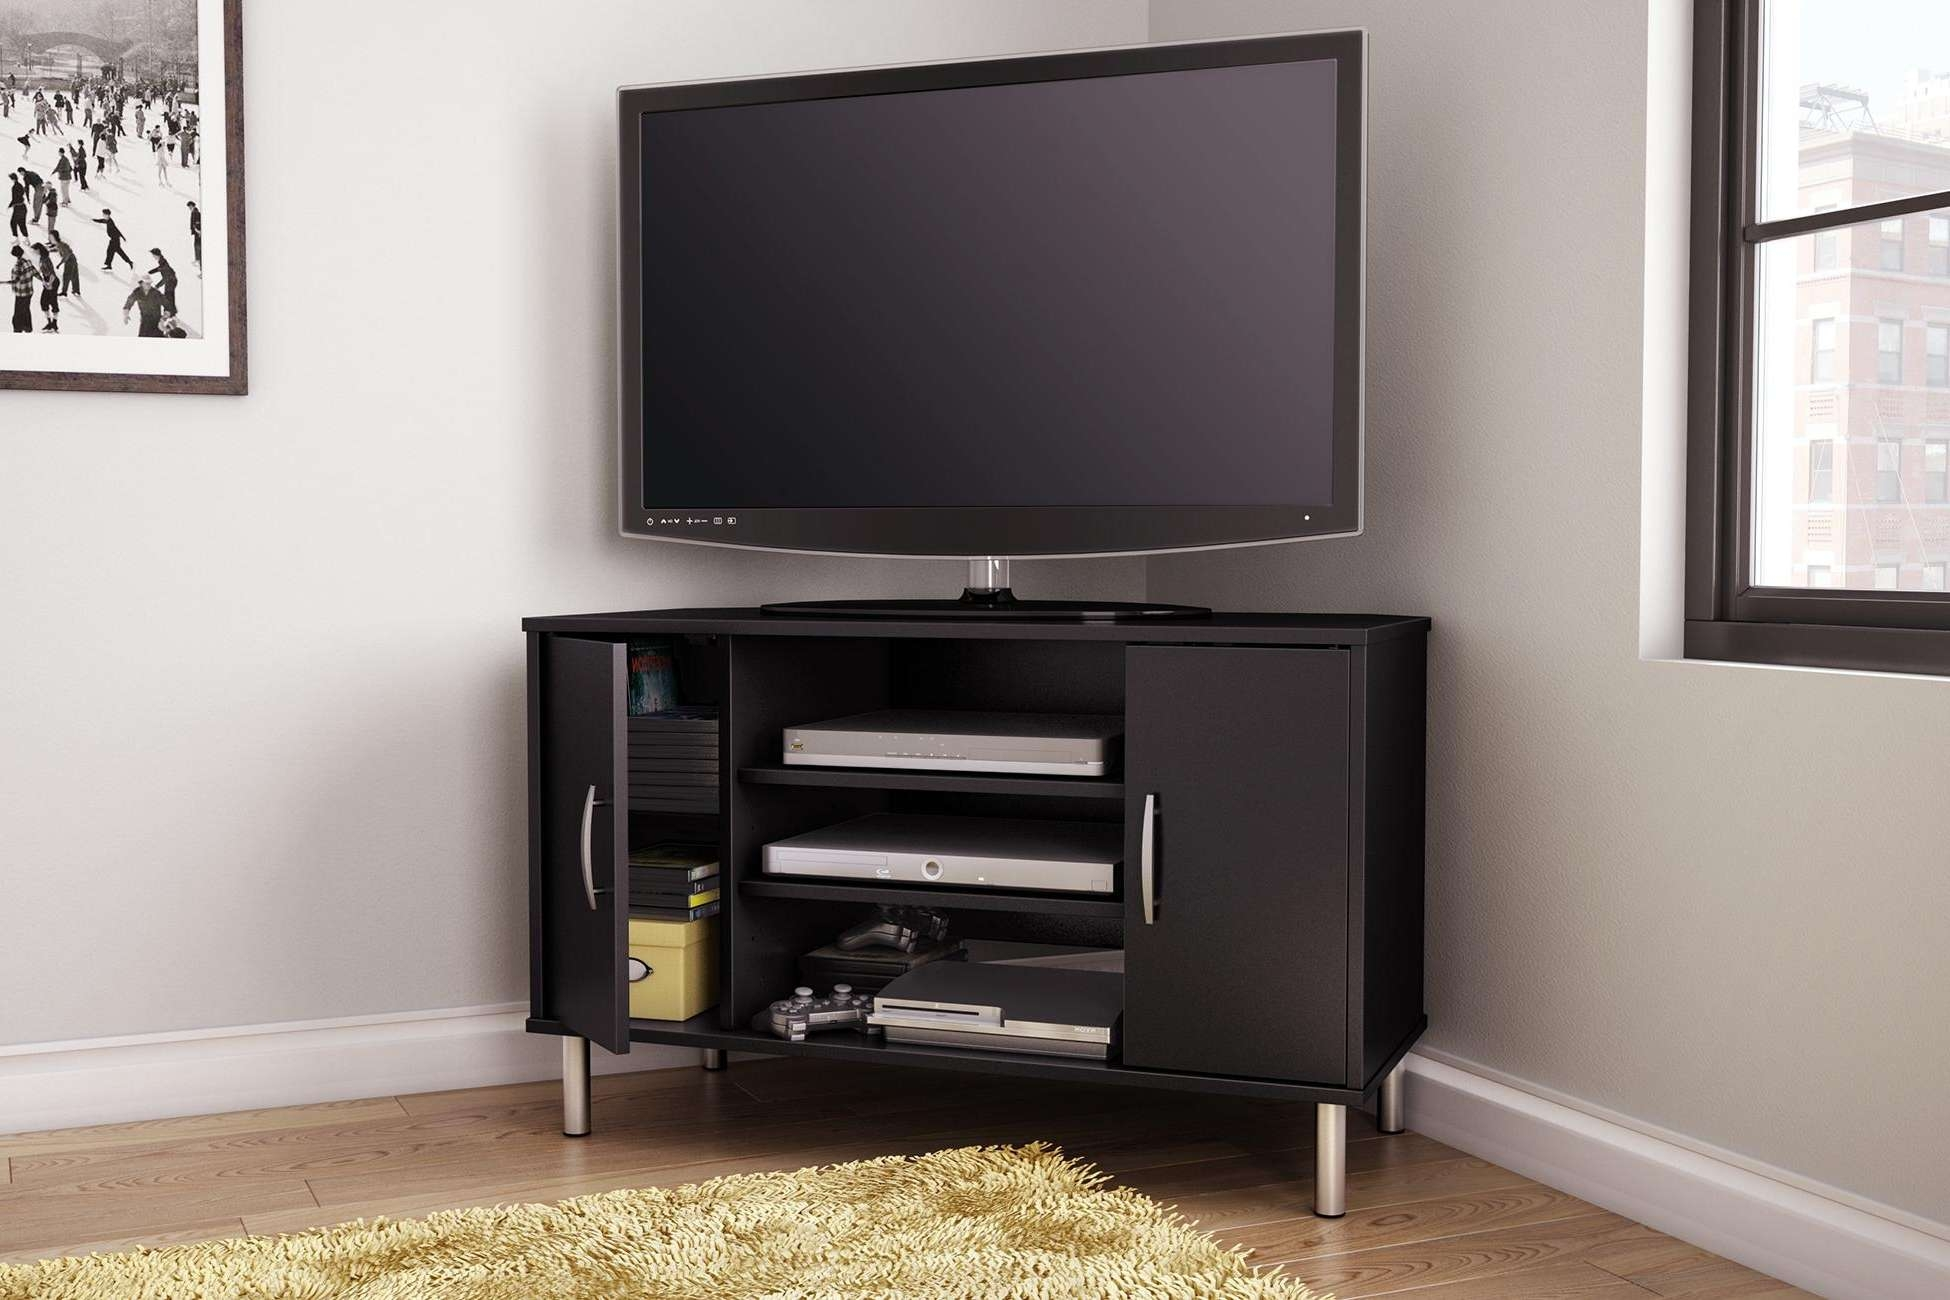 Corner Tv Cabinets For Flat Screen Tvs With Doors • Corner Cabinets In Corner Tv Cabinets For Flat Screens With Doors (View 9 of 20)